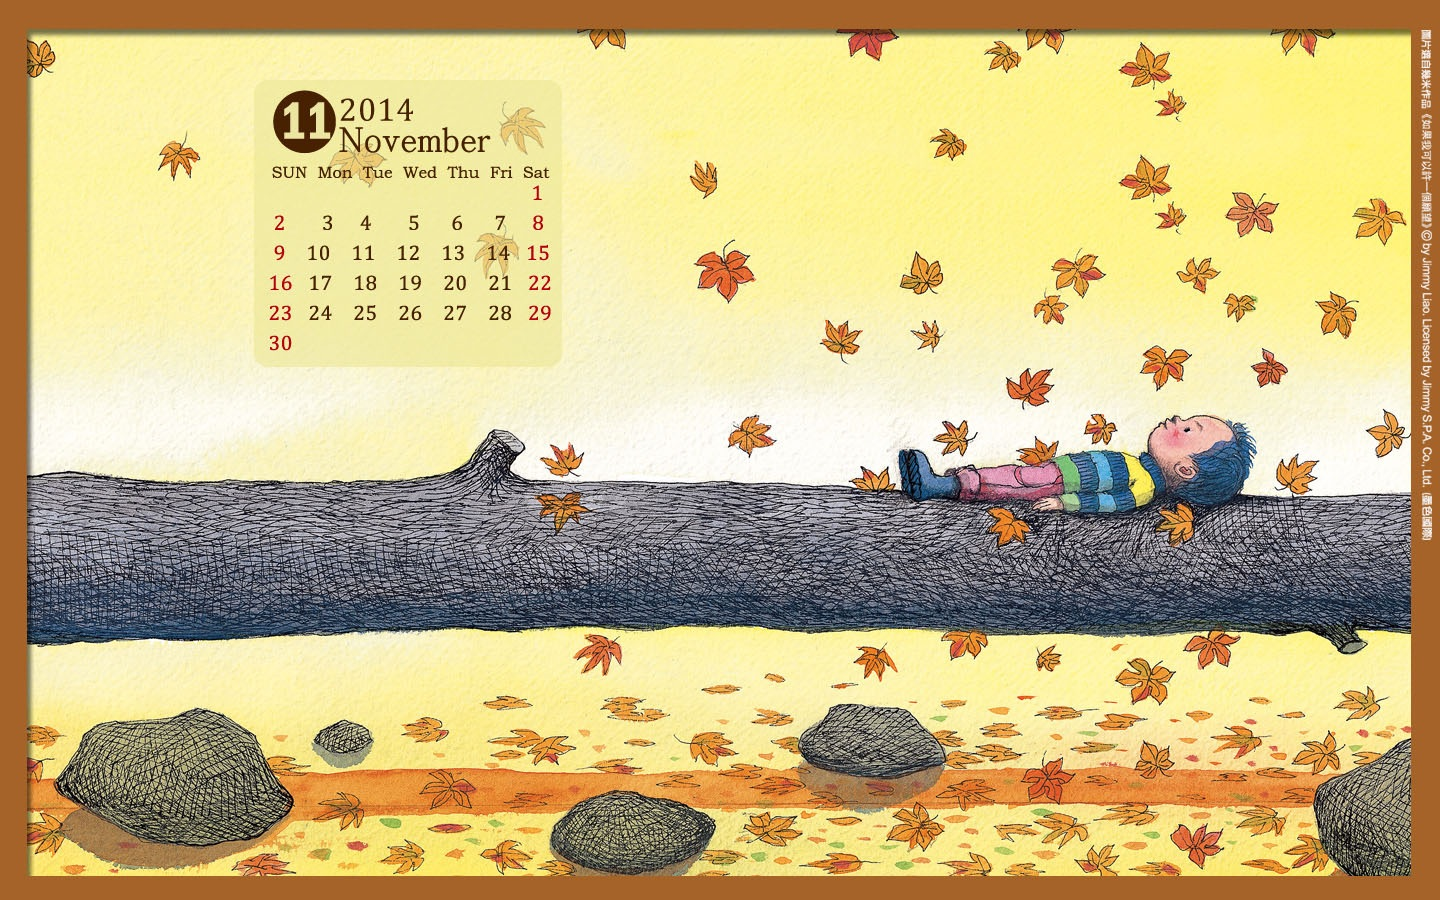 In January Calendar Wallpaper 51117